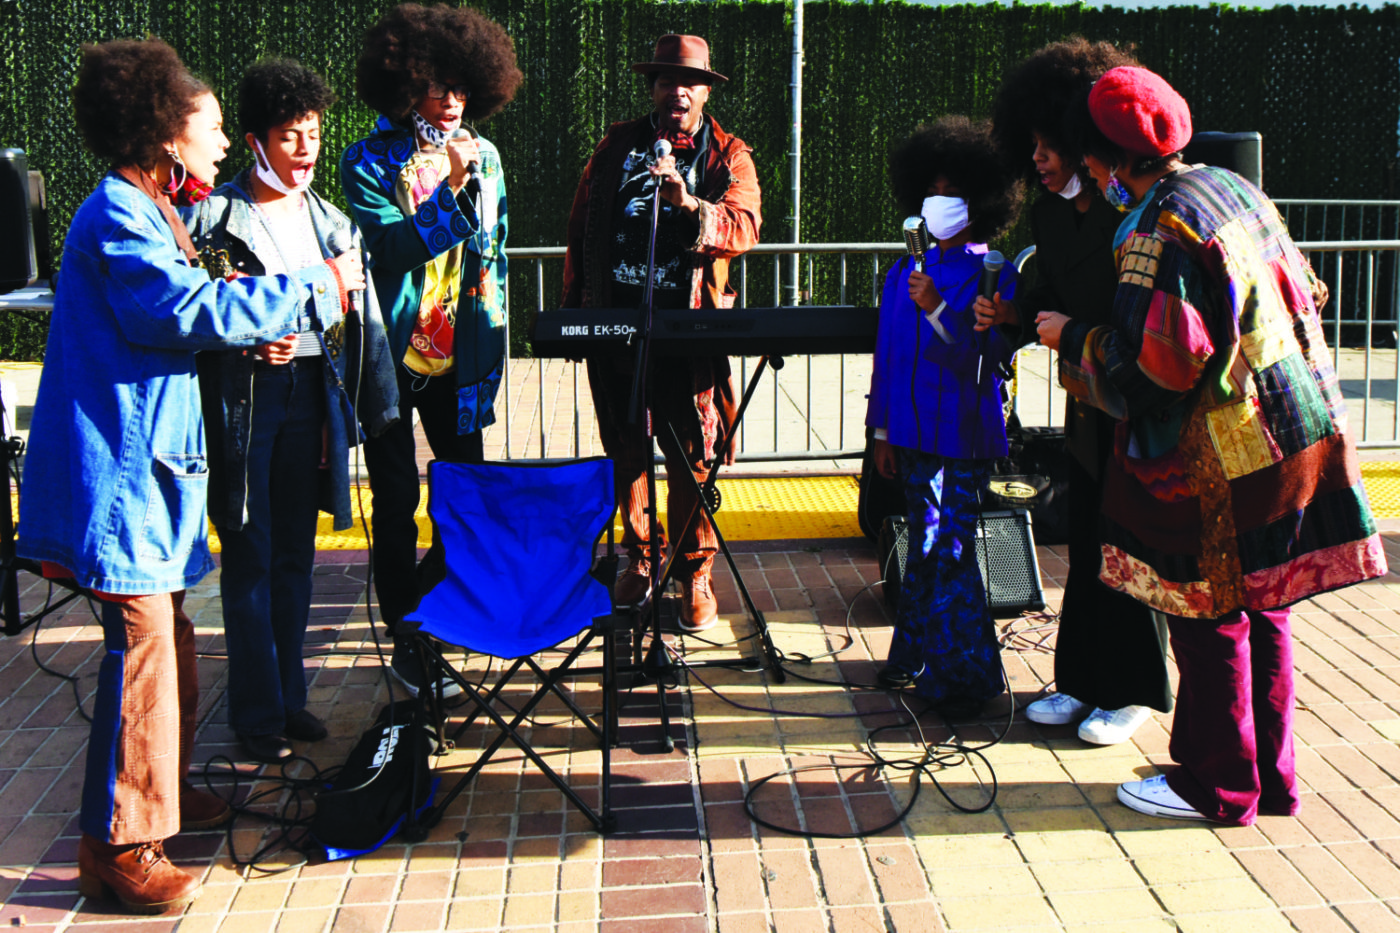 Celebrating-Bayview-Hunters-Point-Community-Curtis-Family-Cnotes-Mendell-Plaza-112120-by-Johnnie-Burrell-1400x933, City's dynamic 'First Family of Song' brings tunes to COVID-19 testing site, Culture Currents